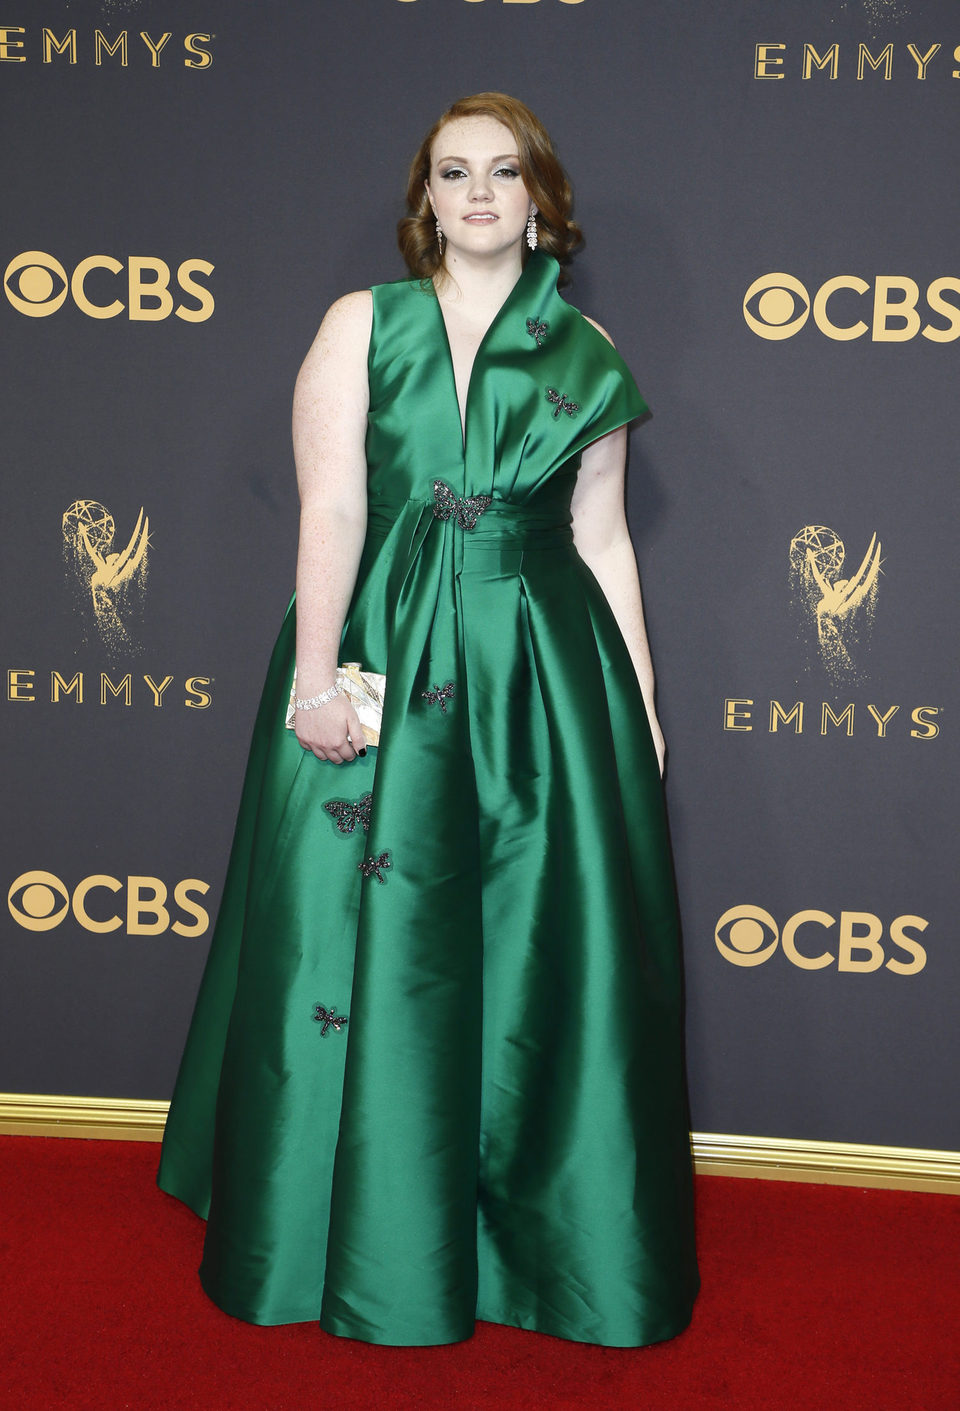 Shannon Purser at the Emmy 2017 red carpet